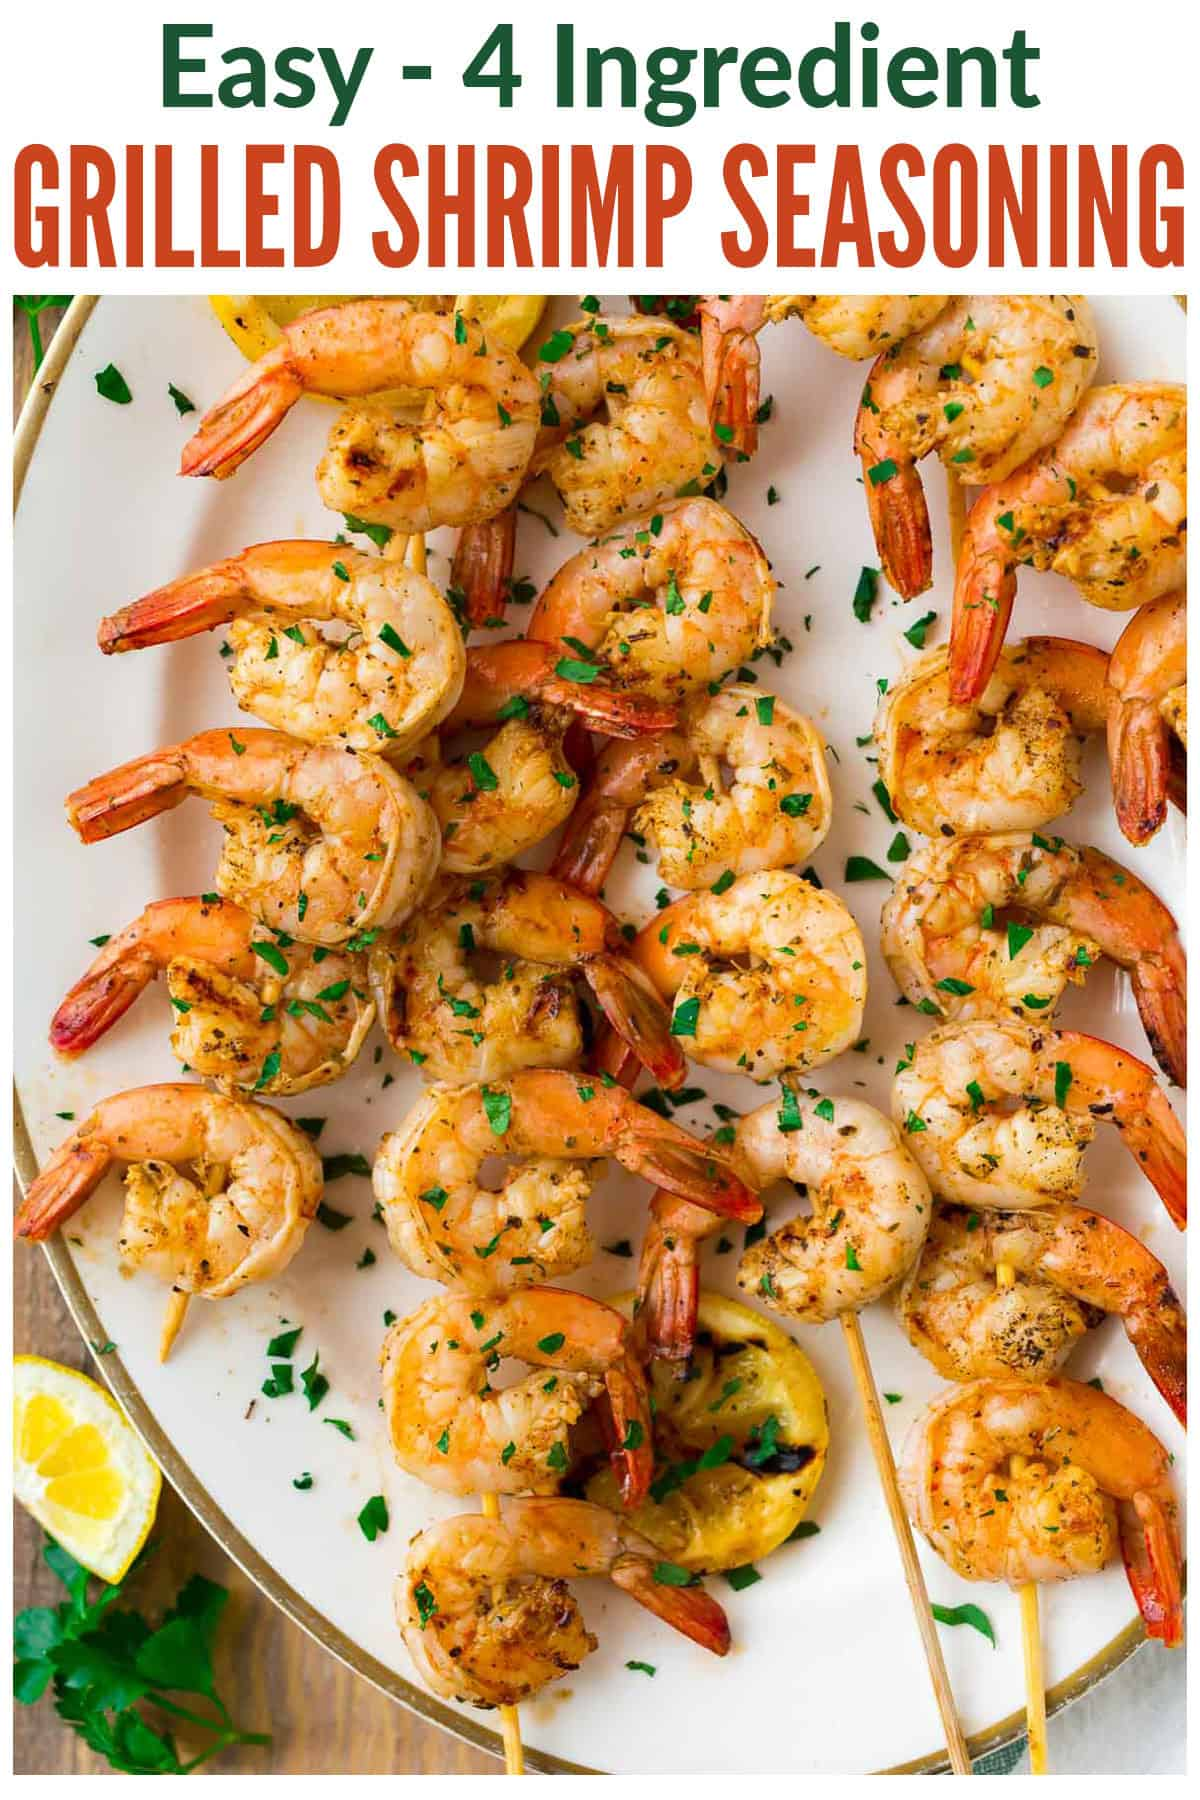 4-Ingredient Grilled Shrimp Seasoning. Perfect blend of spices for making the best easy grilled shrimp! Use this recipe for grilled garlic shrimp skewers in the summer or baked shrimp all year long. #shrimp #grilling #grilled #healthy #easy #recipe #recipes #appetizers #appetizer #skewers #grill